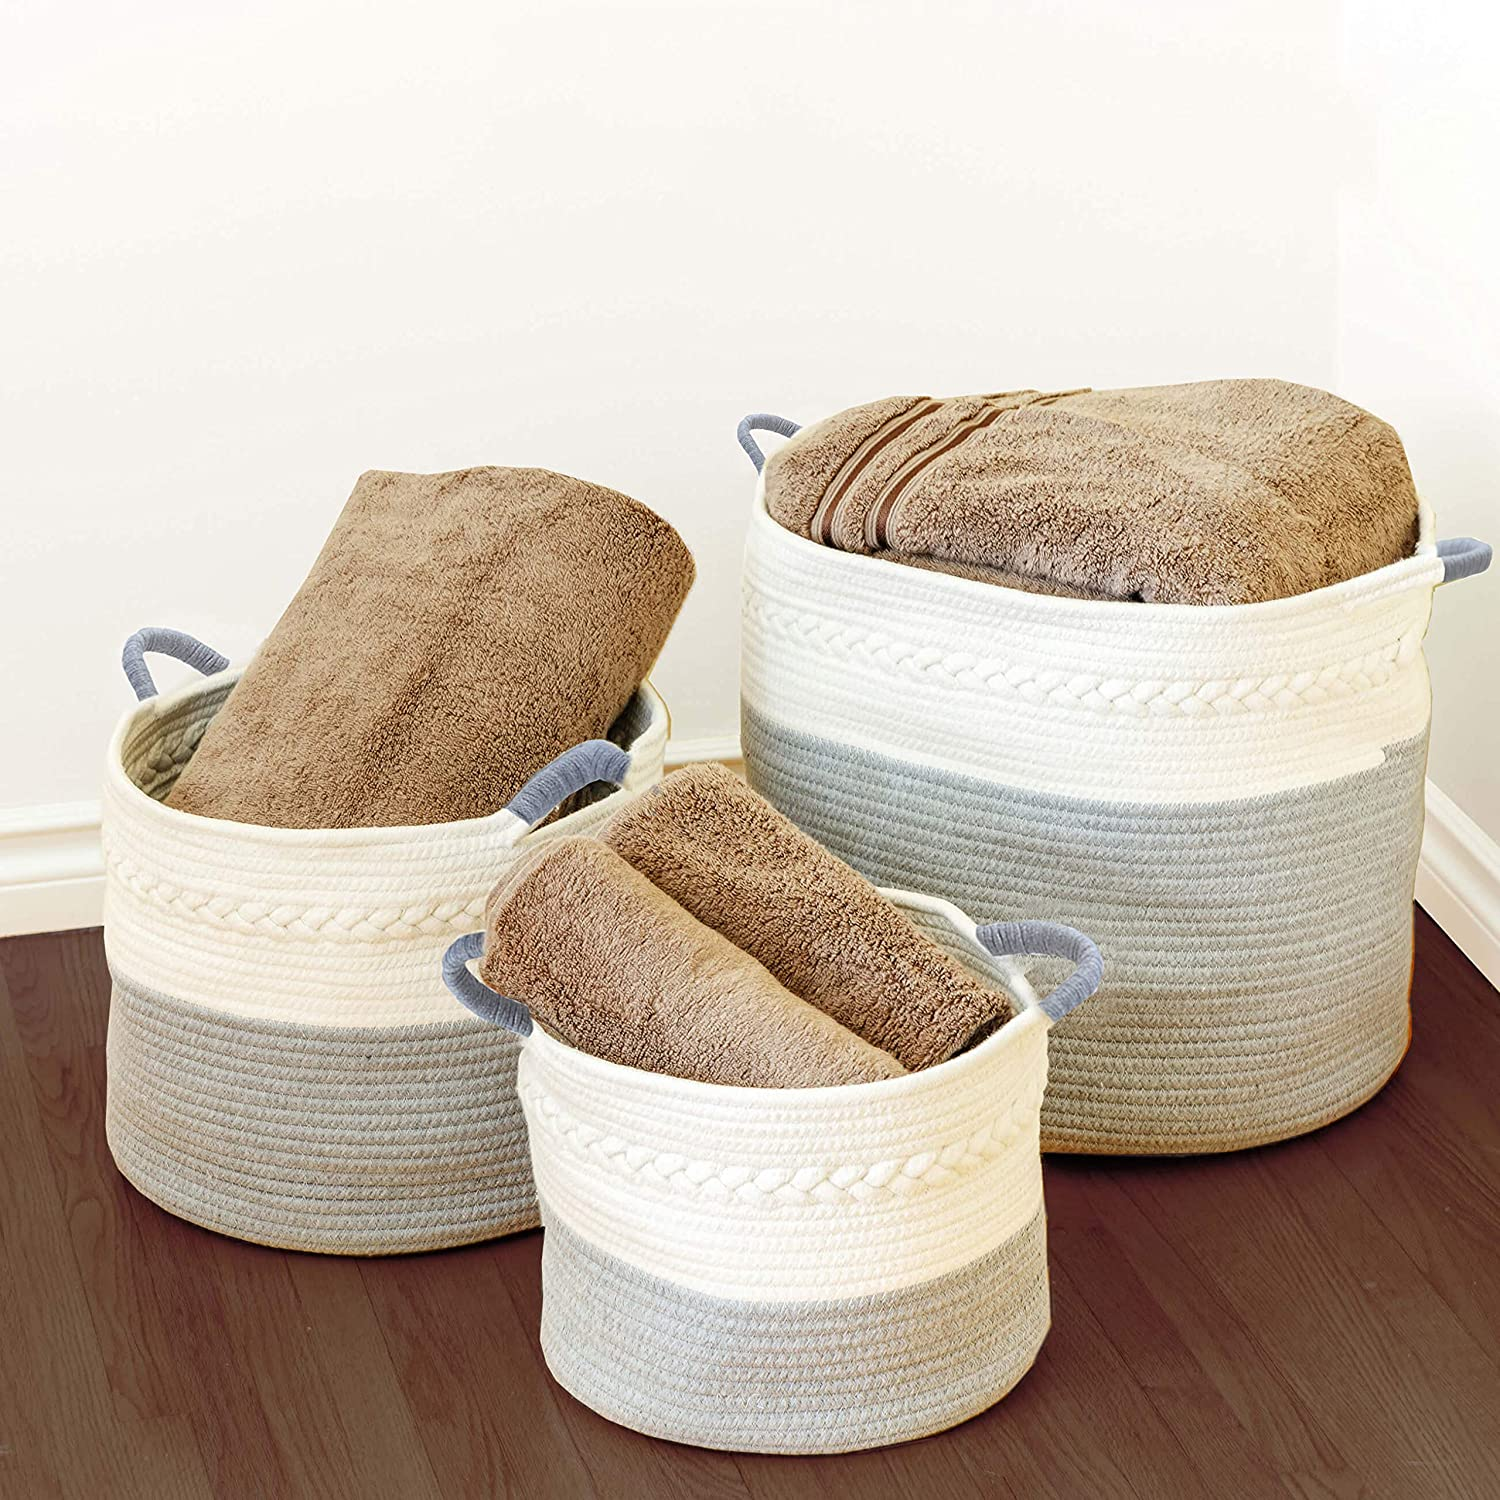 3 Pack Woven Rope Basket Set - Small Medium & Large Organic Woven White & Gray Cotton Rope Baskets, Durable Materials with Soft Rope Handles. Great for Laundry, Toys, Towels, Bedding & Nurseries